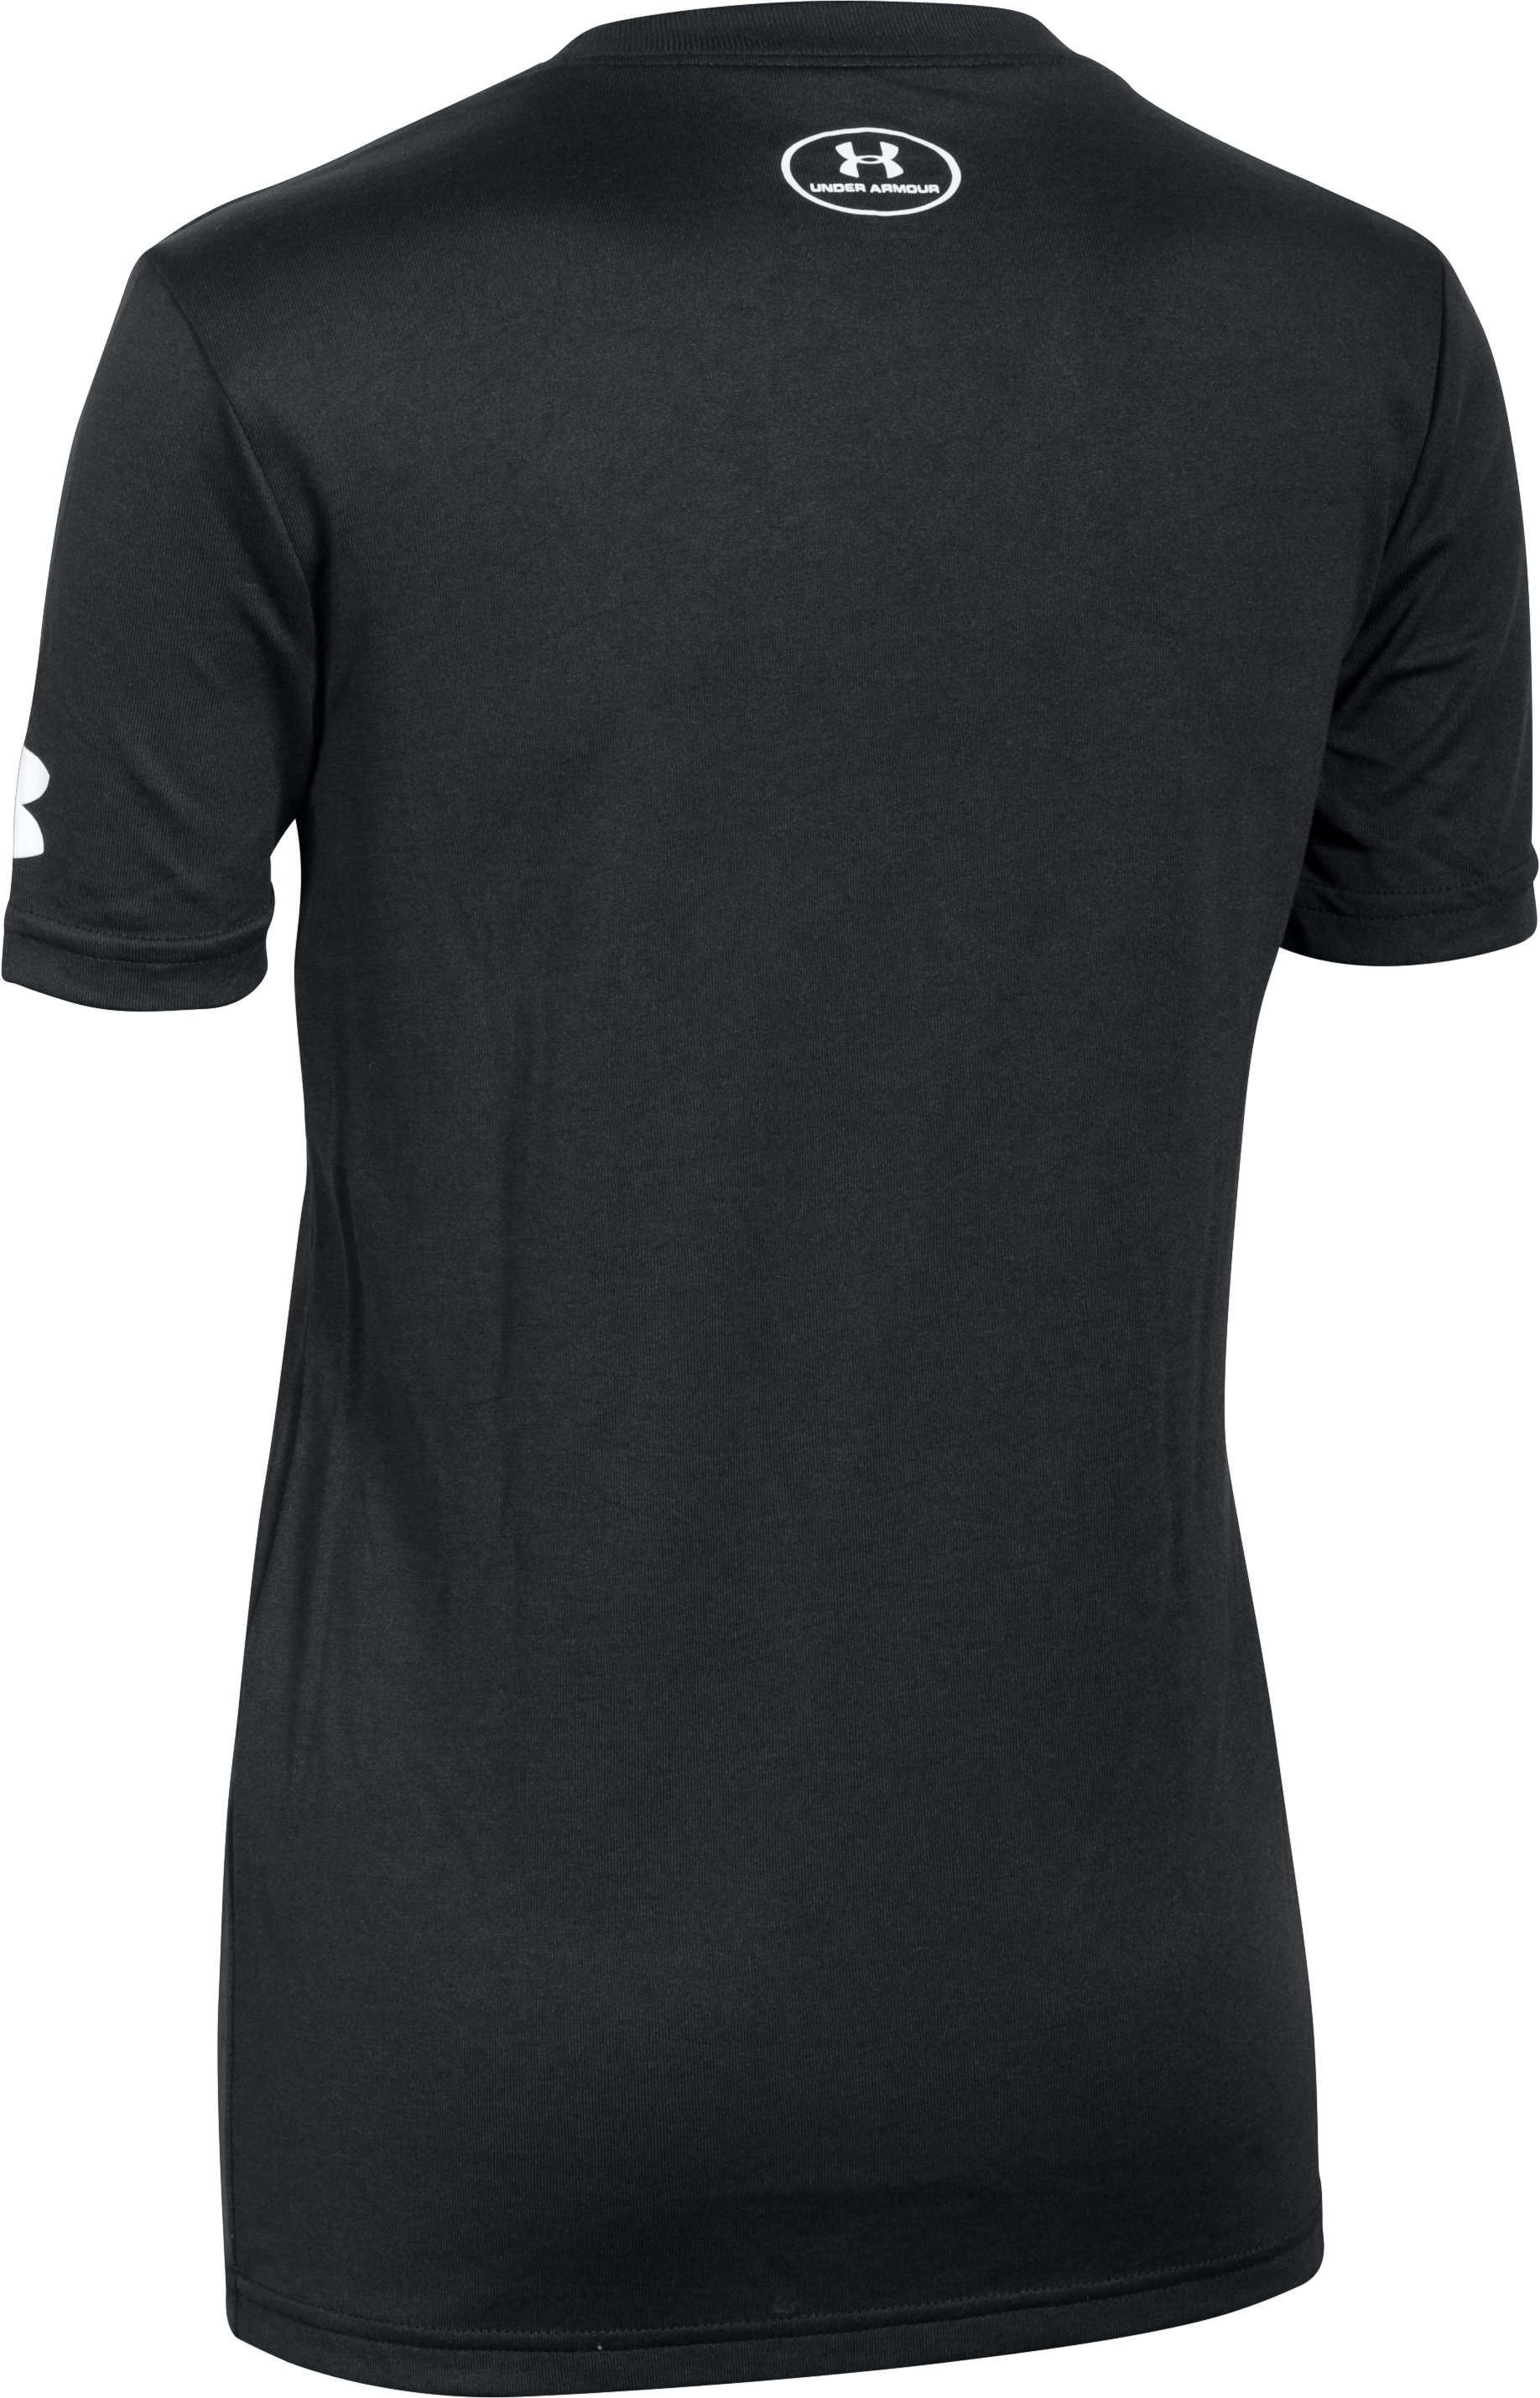 Boys' SC30 Branded T-Shirt, Black , undefined